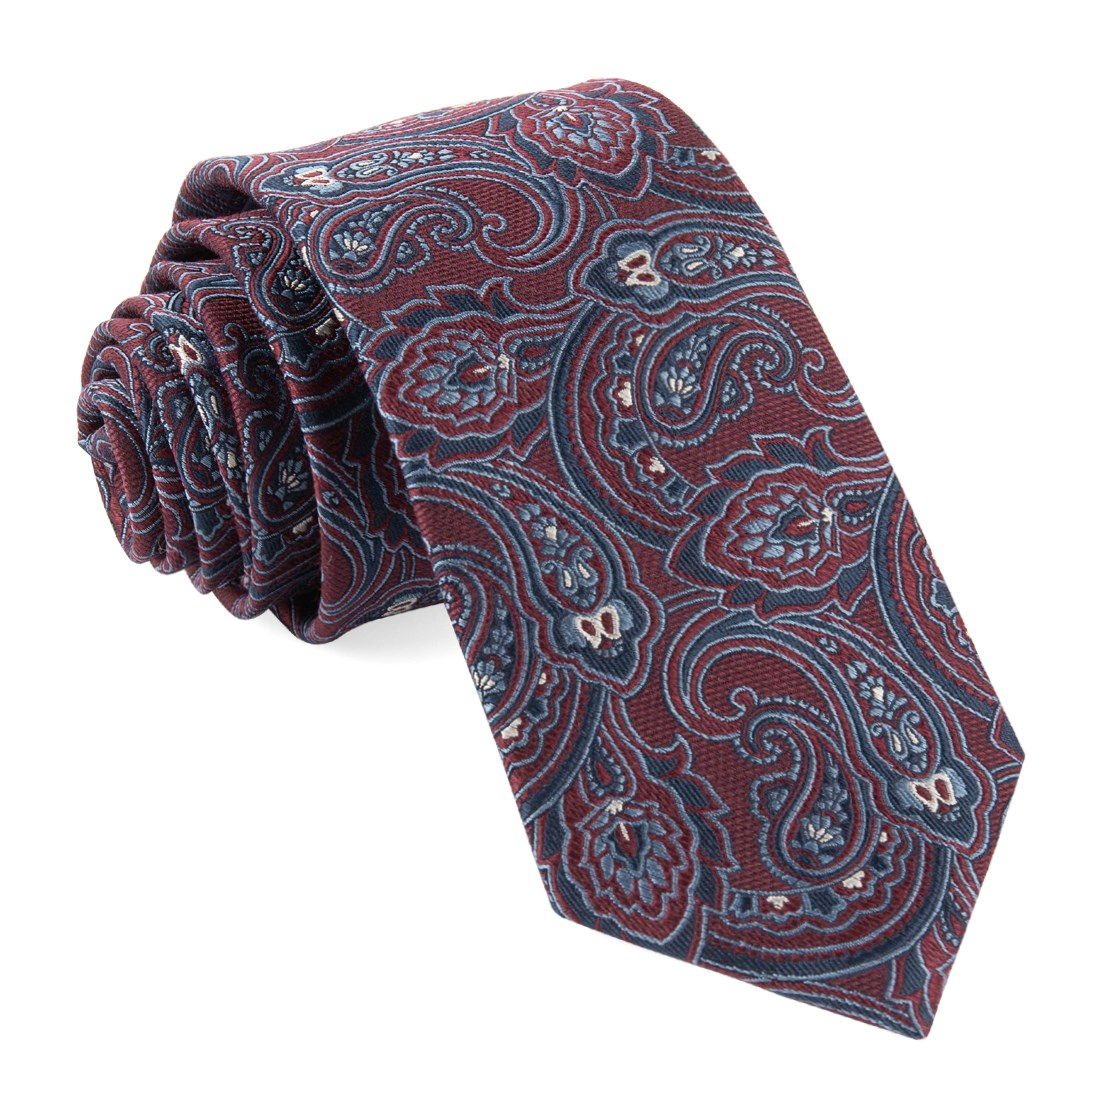 178e83bdb4 Tailored Paisley Tie | Men's Ties | The Tie Bar